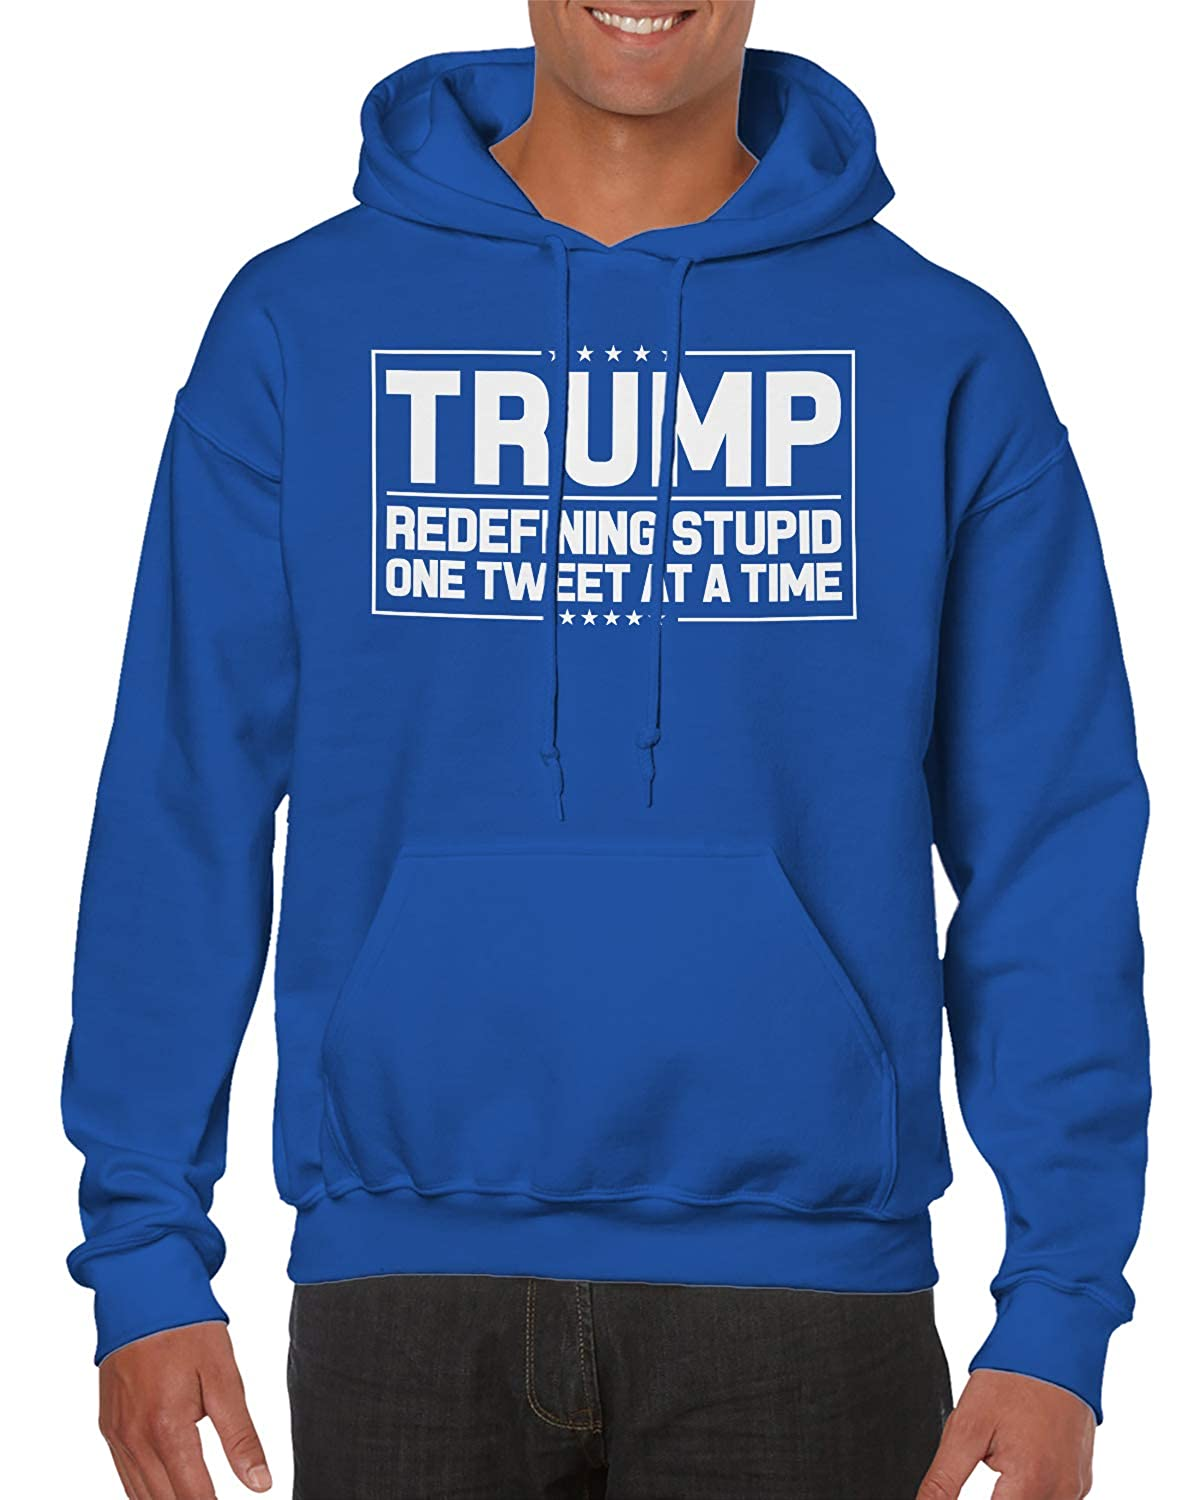 SpiritForged Apparel Trump Redefining Stupid One Tweet at A Time Hooded Sweatshirt